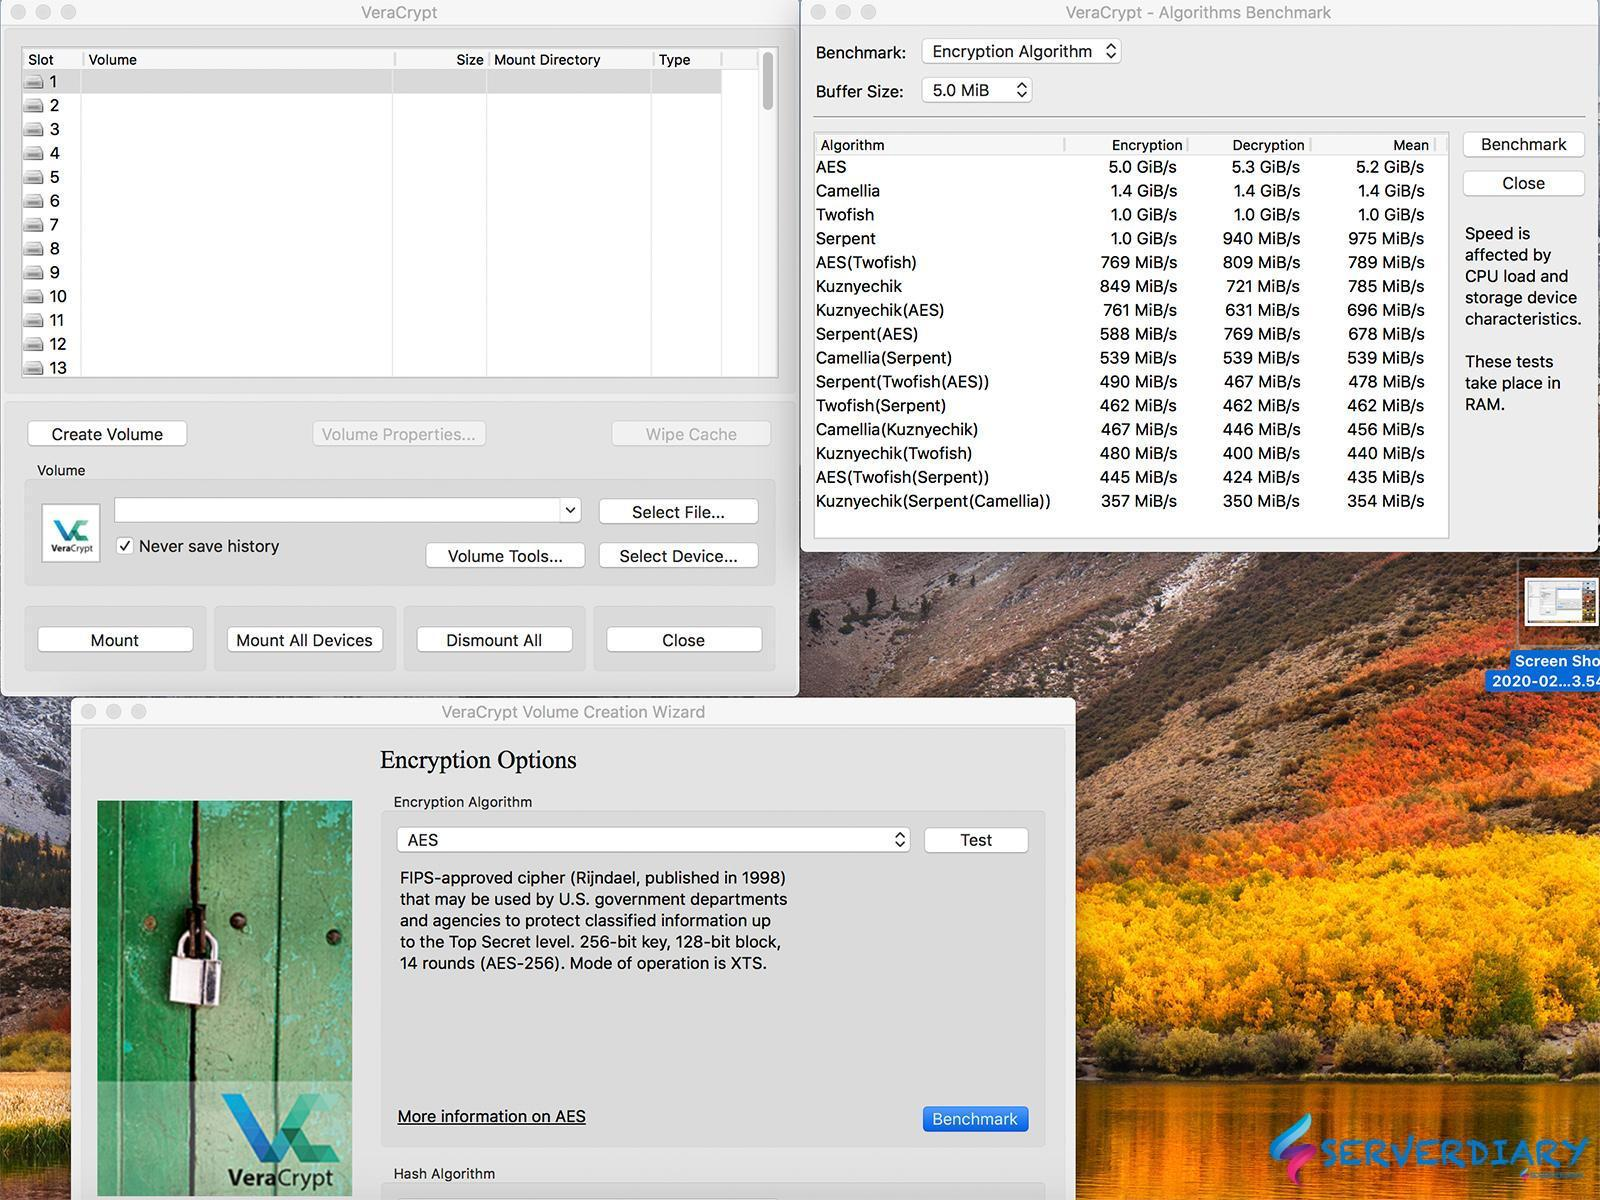 Encrypt your files with VeraCrypt on Linux, Windows, Mac OS and Android